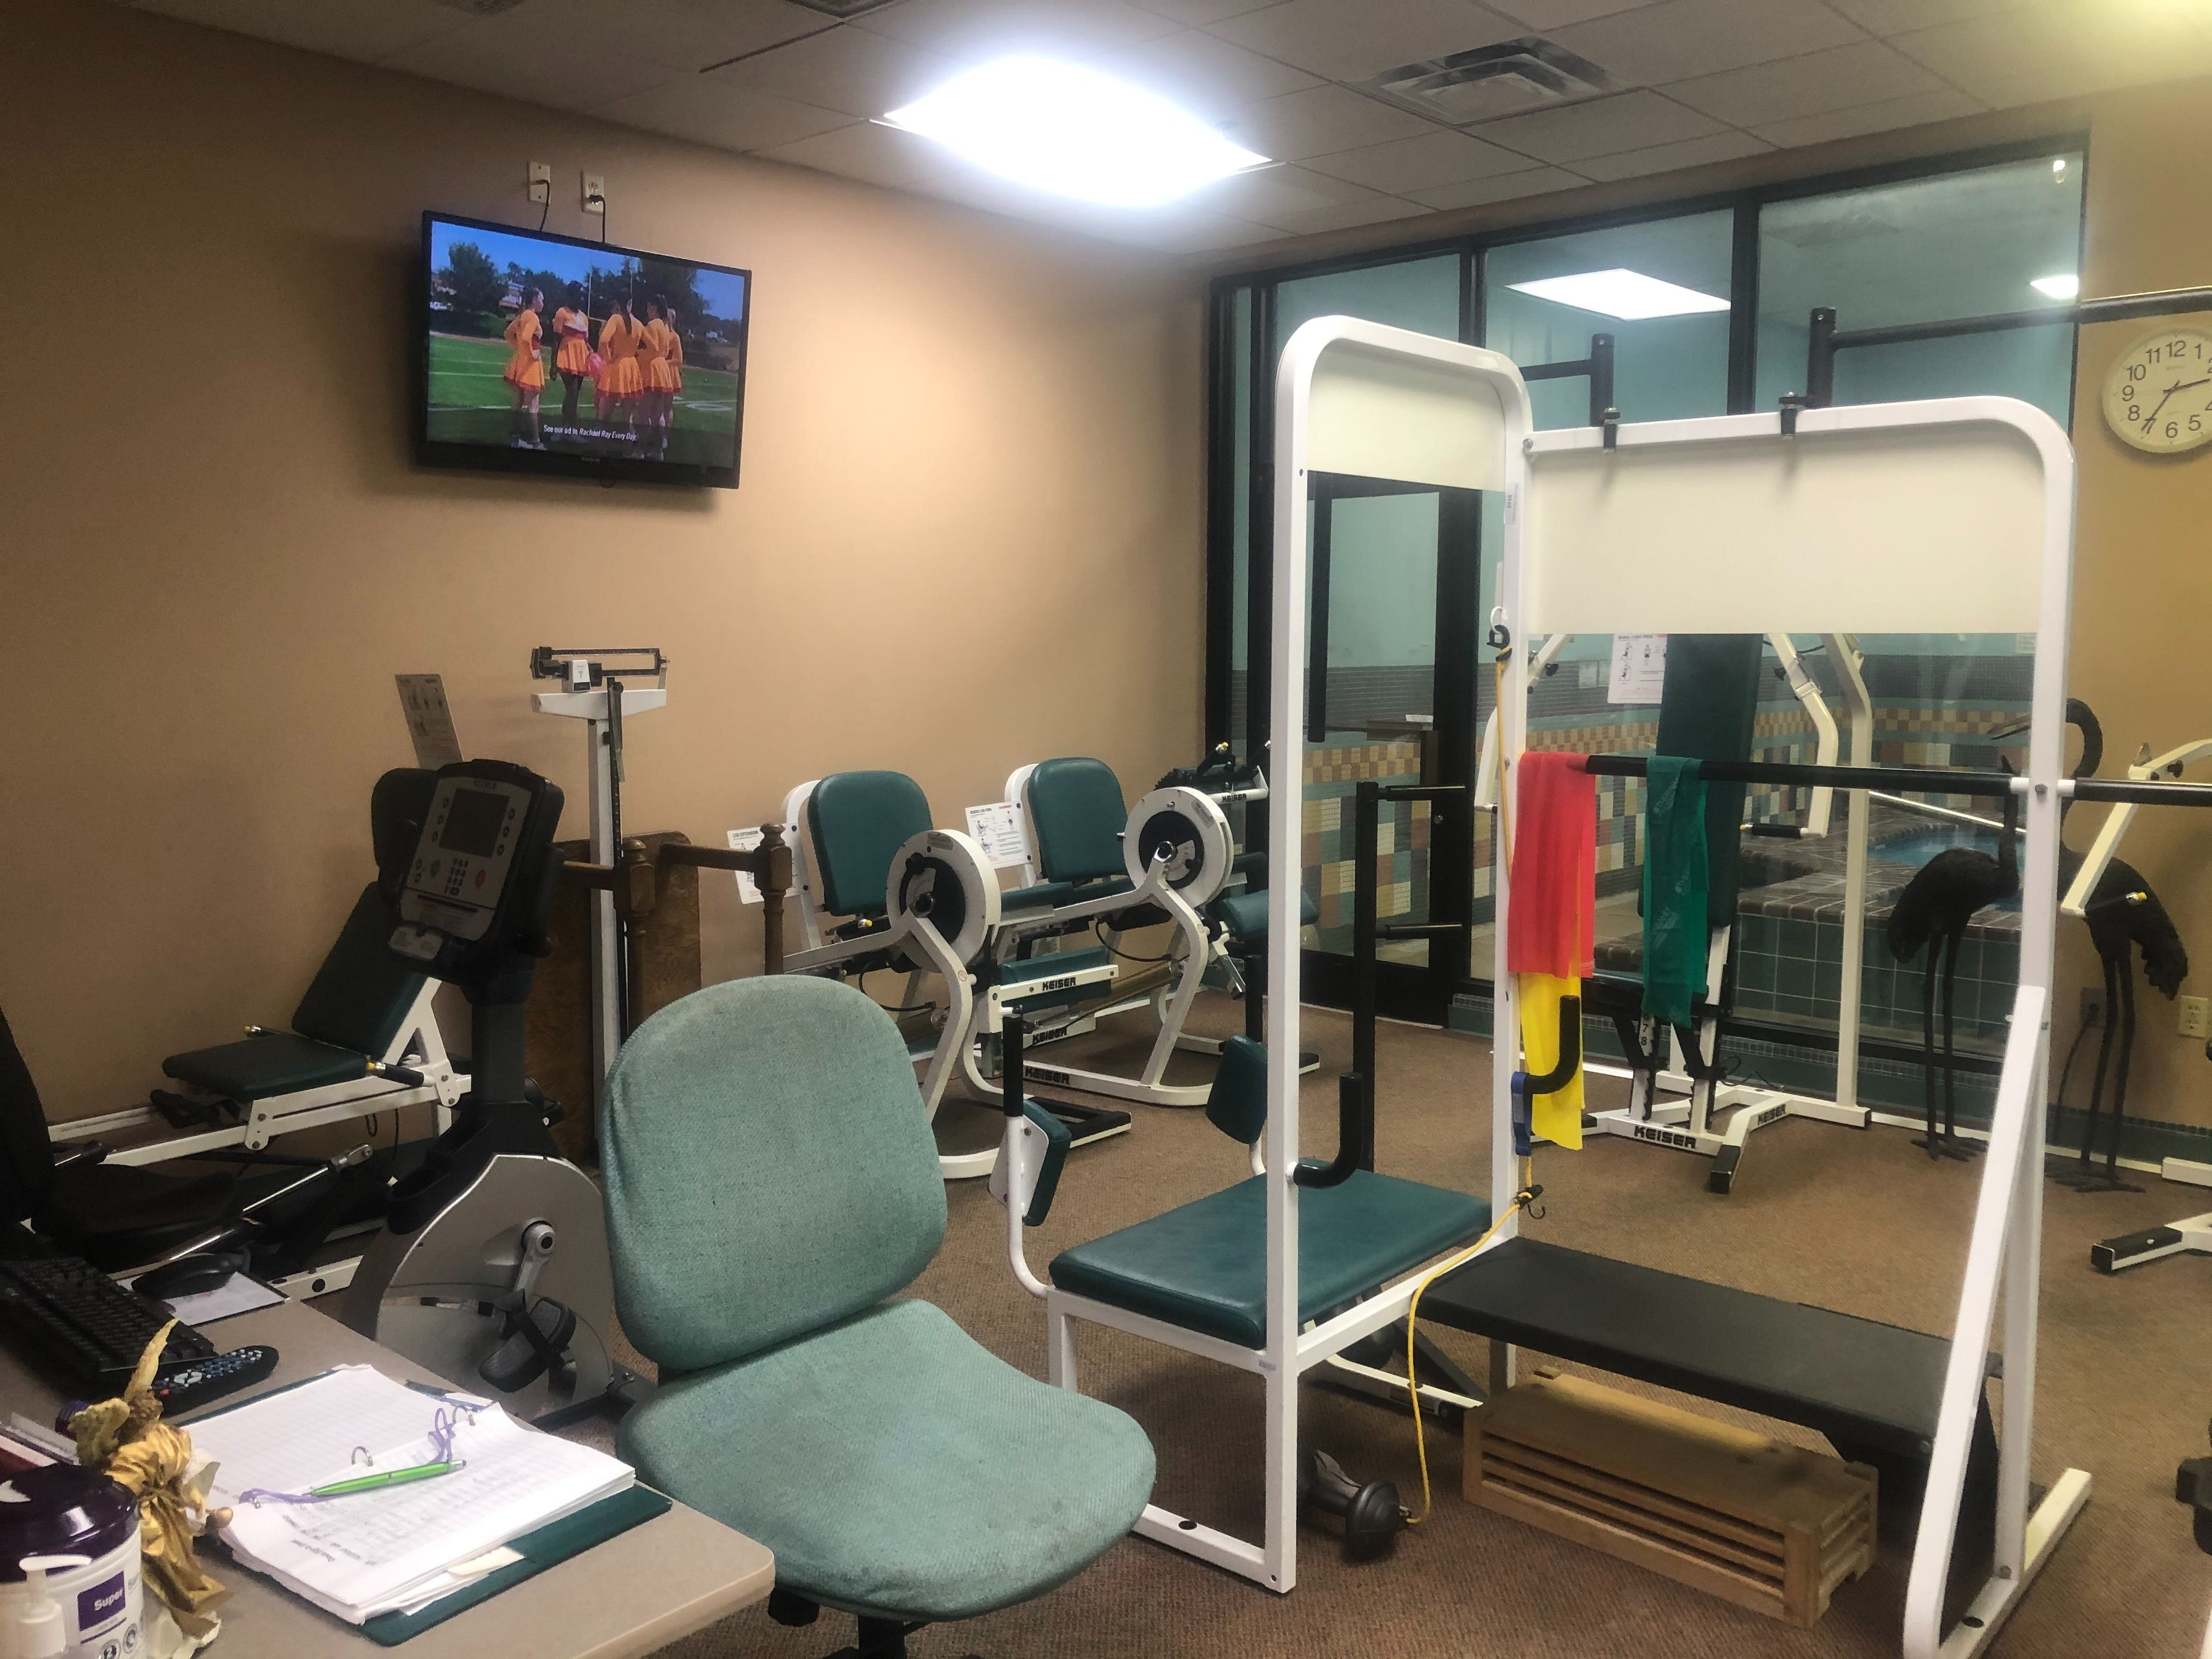 The current workout room at Kirby Pines retirement community is too small for the number of residents who want to stay active and the activities they want to try. They're expanding the workout facility, including the indoor pool. (A.J. Dugger)